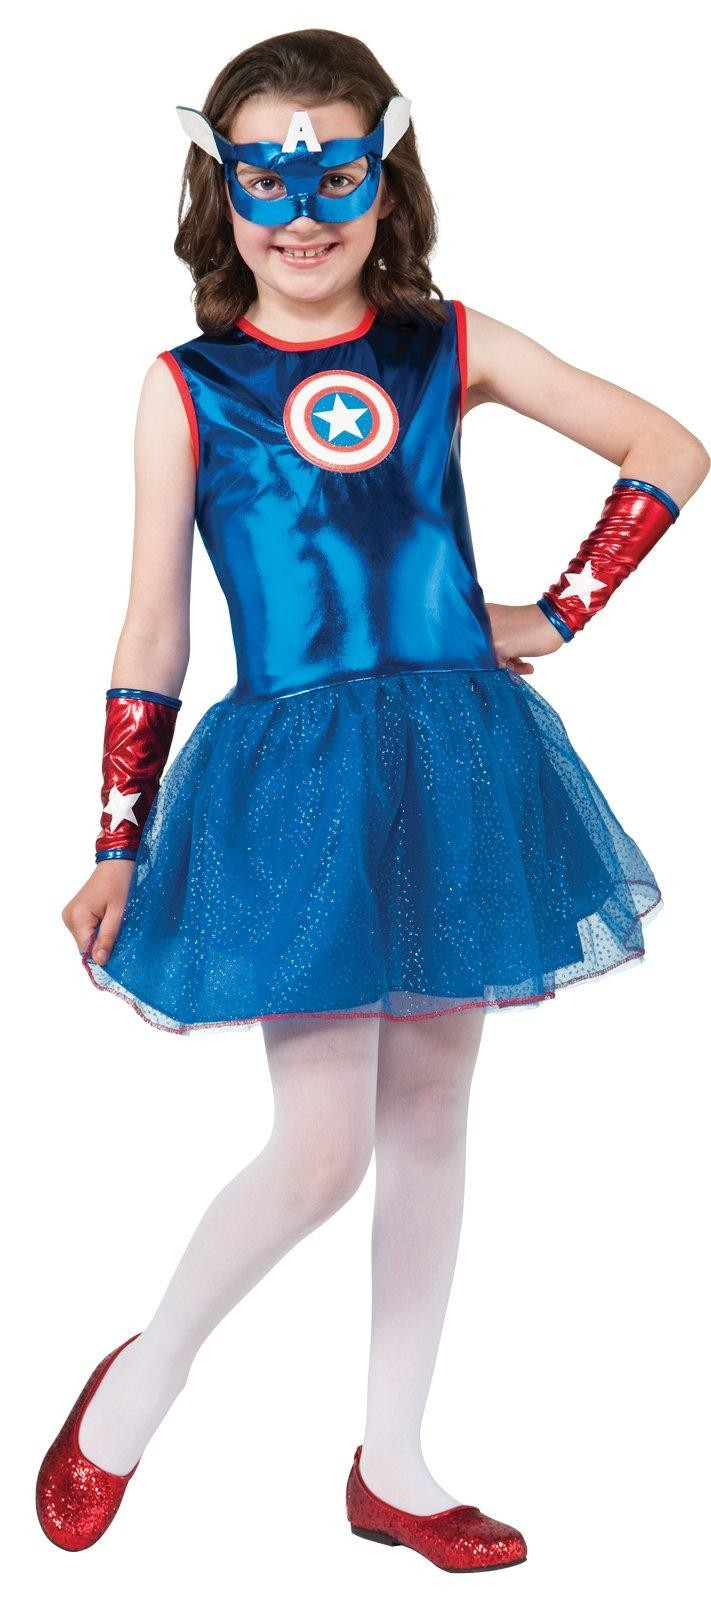 Marvel Captain America Child Girl's Costume - Costumes.com.au